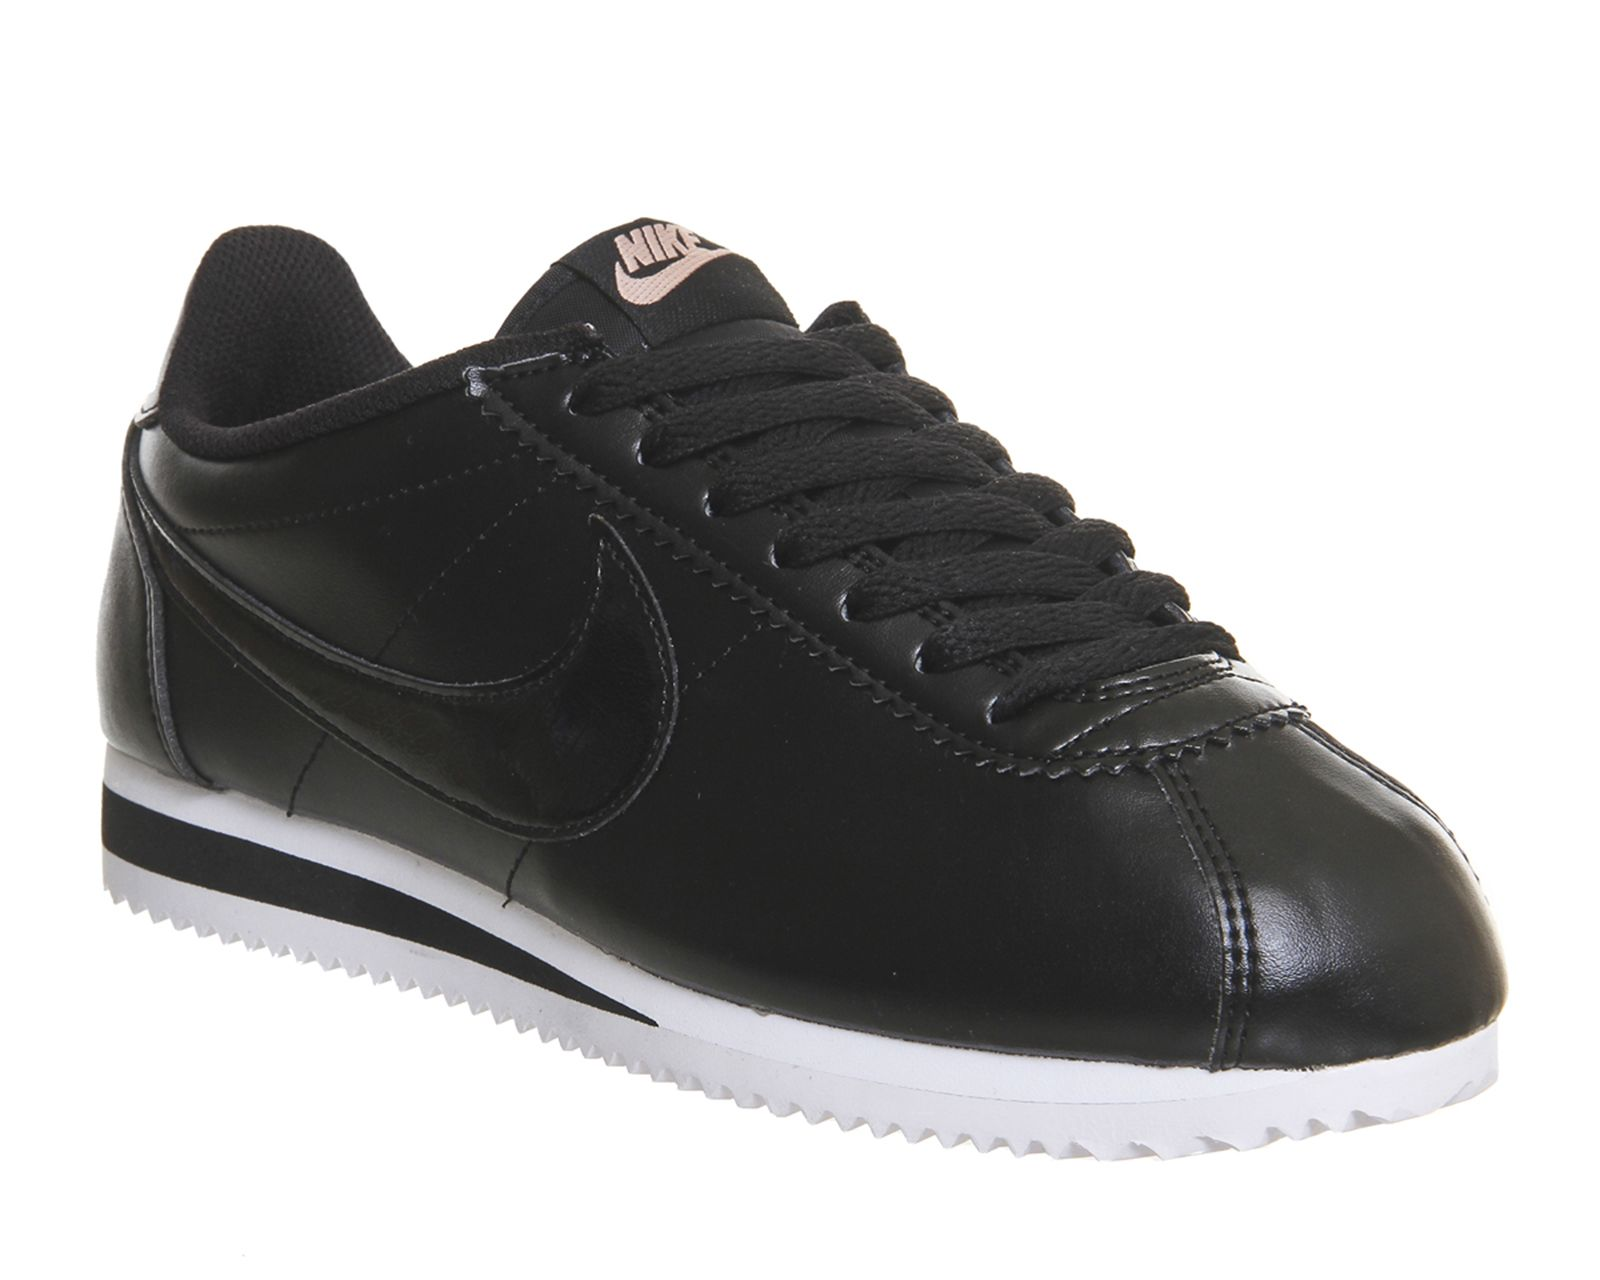 Outlet Trainers Nike Classic Cortez Og Black Leather Unisex Sports